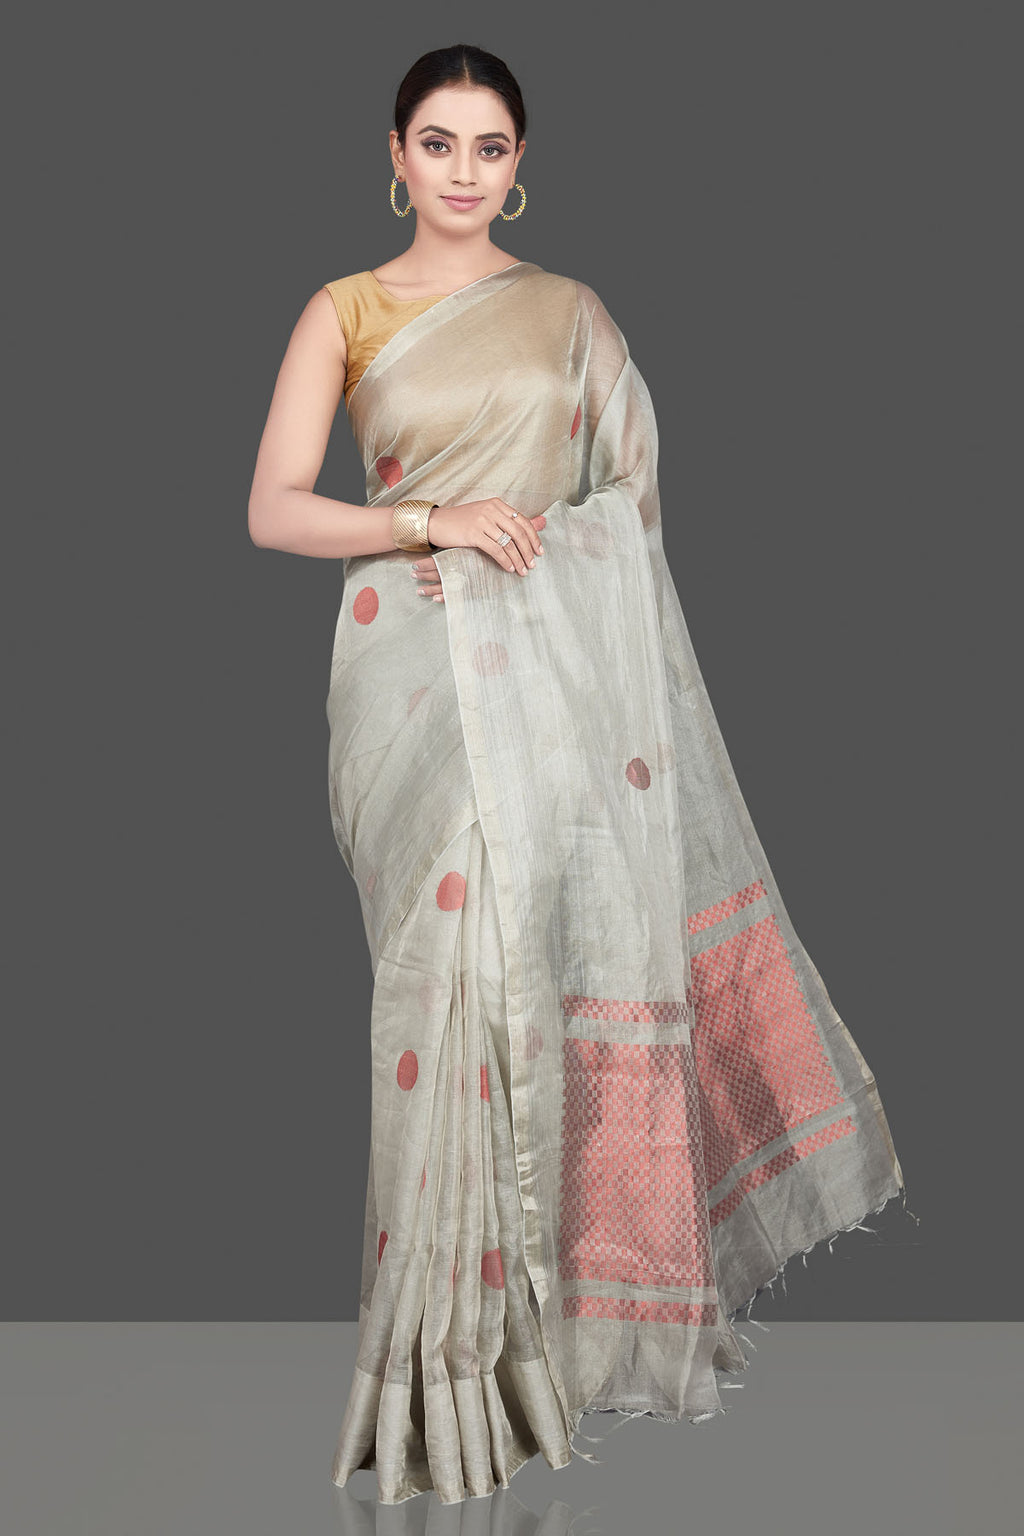 Buy stunning light grey tissue silk saree online in USA with red buta. Be the highlight of the occasion in beautiful pure silk saree, designer saris, handloom sarees, embroidered sarees, Kanchipuram sarees, Banarasi sarees from Pure Elegance Indian saree store in USA.-full view